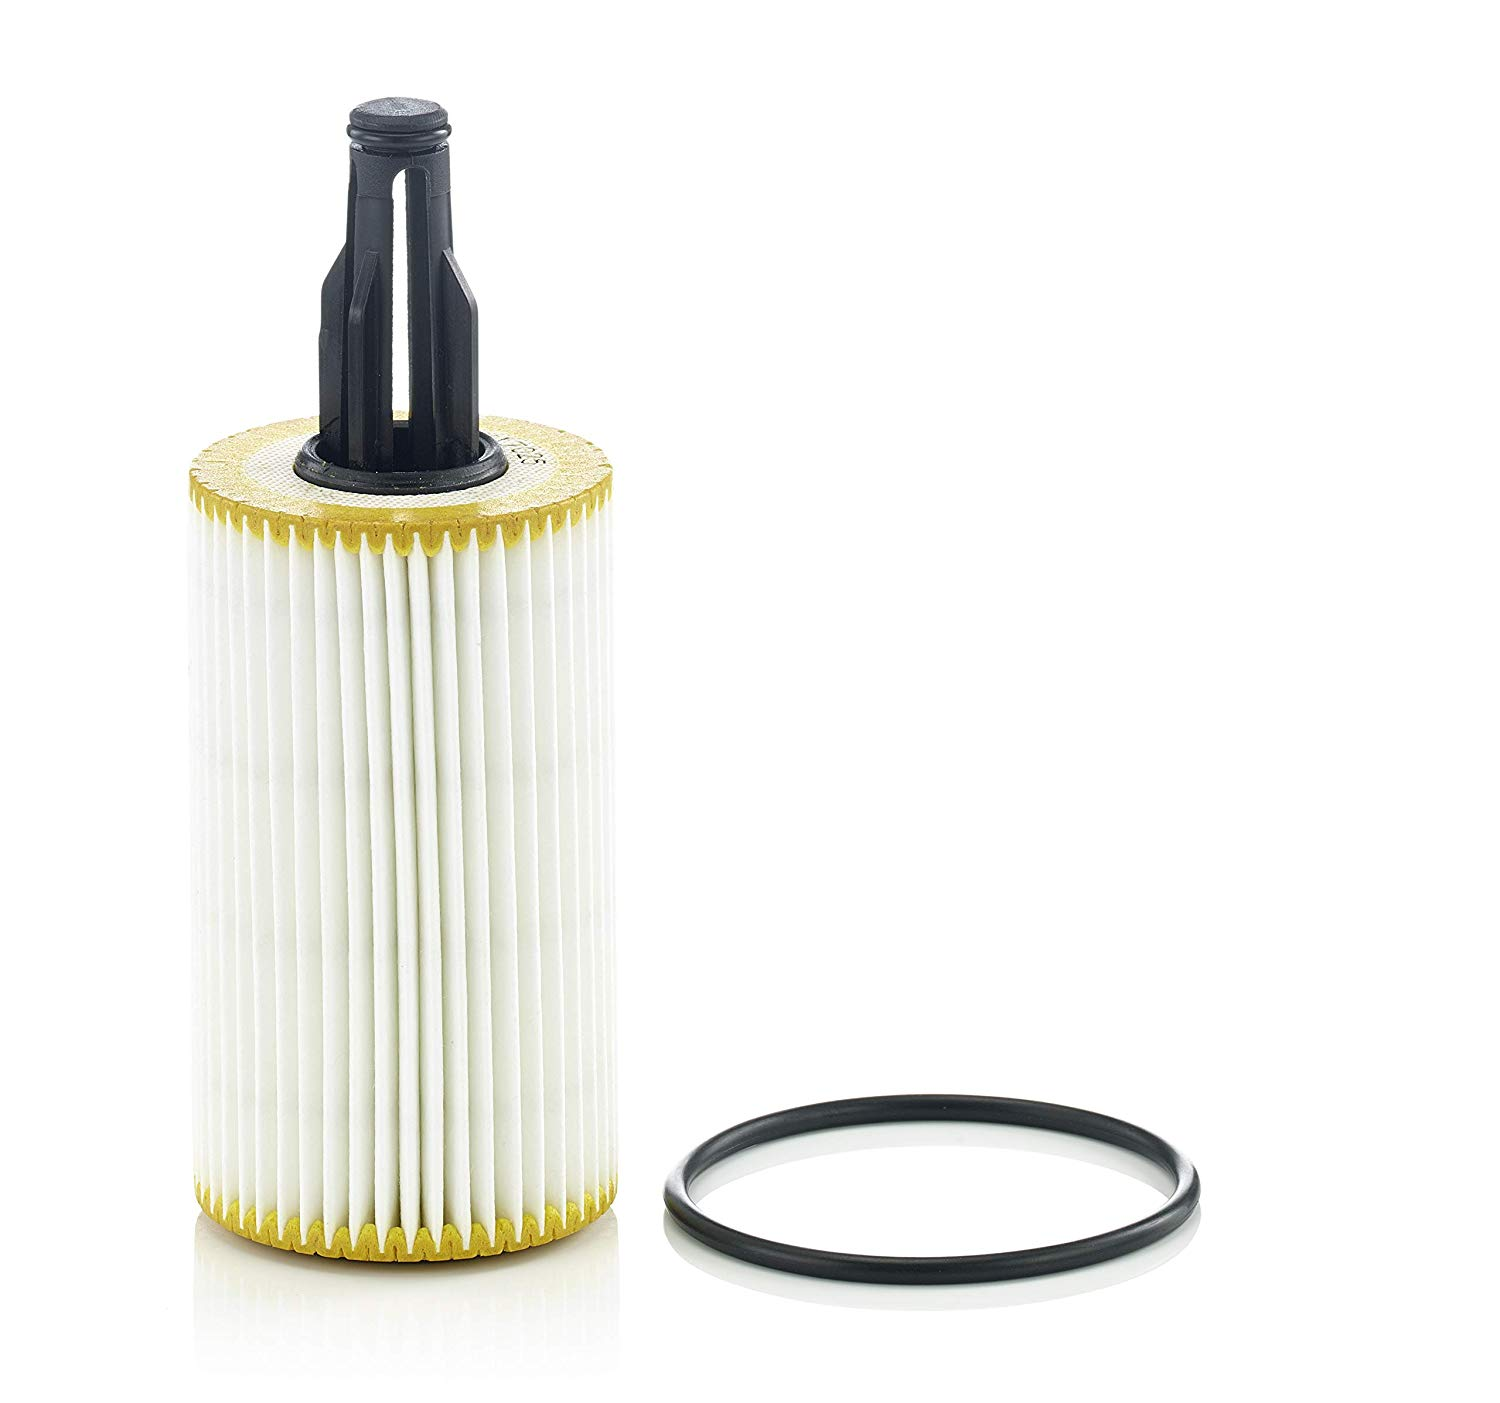 MERCEDES Oil Filter -  Mercedes Benz 2009-2010 CL550, 2007-2011 CLS550, 2008-2009 E350, 2007-2012 GL450, 2008-2012 GL550, 2010-2012 GLK350, 2006-2011 ML350, 2008-2011 ML550, 2007-2009 R350, 2008-2009 S550